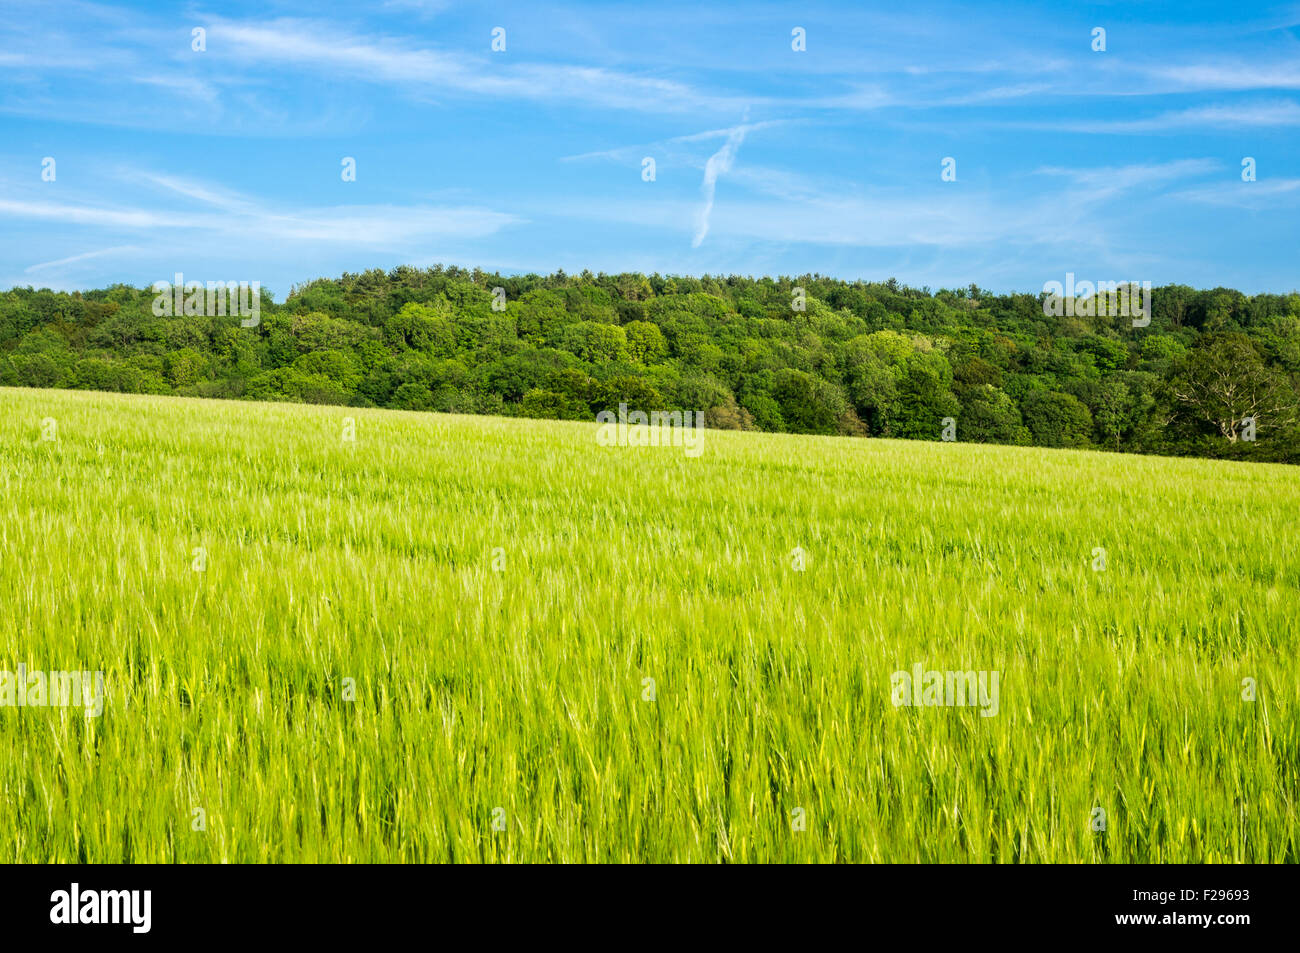 A warm, summers day looking across a field of growing crops - Stock Image